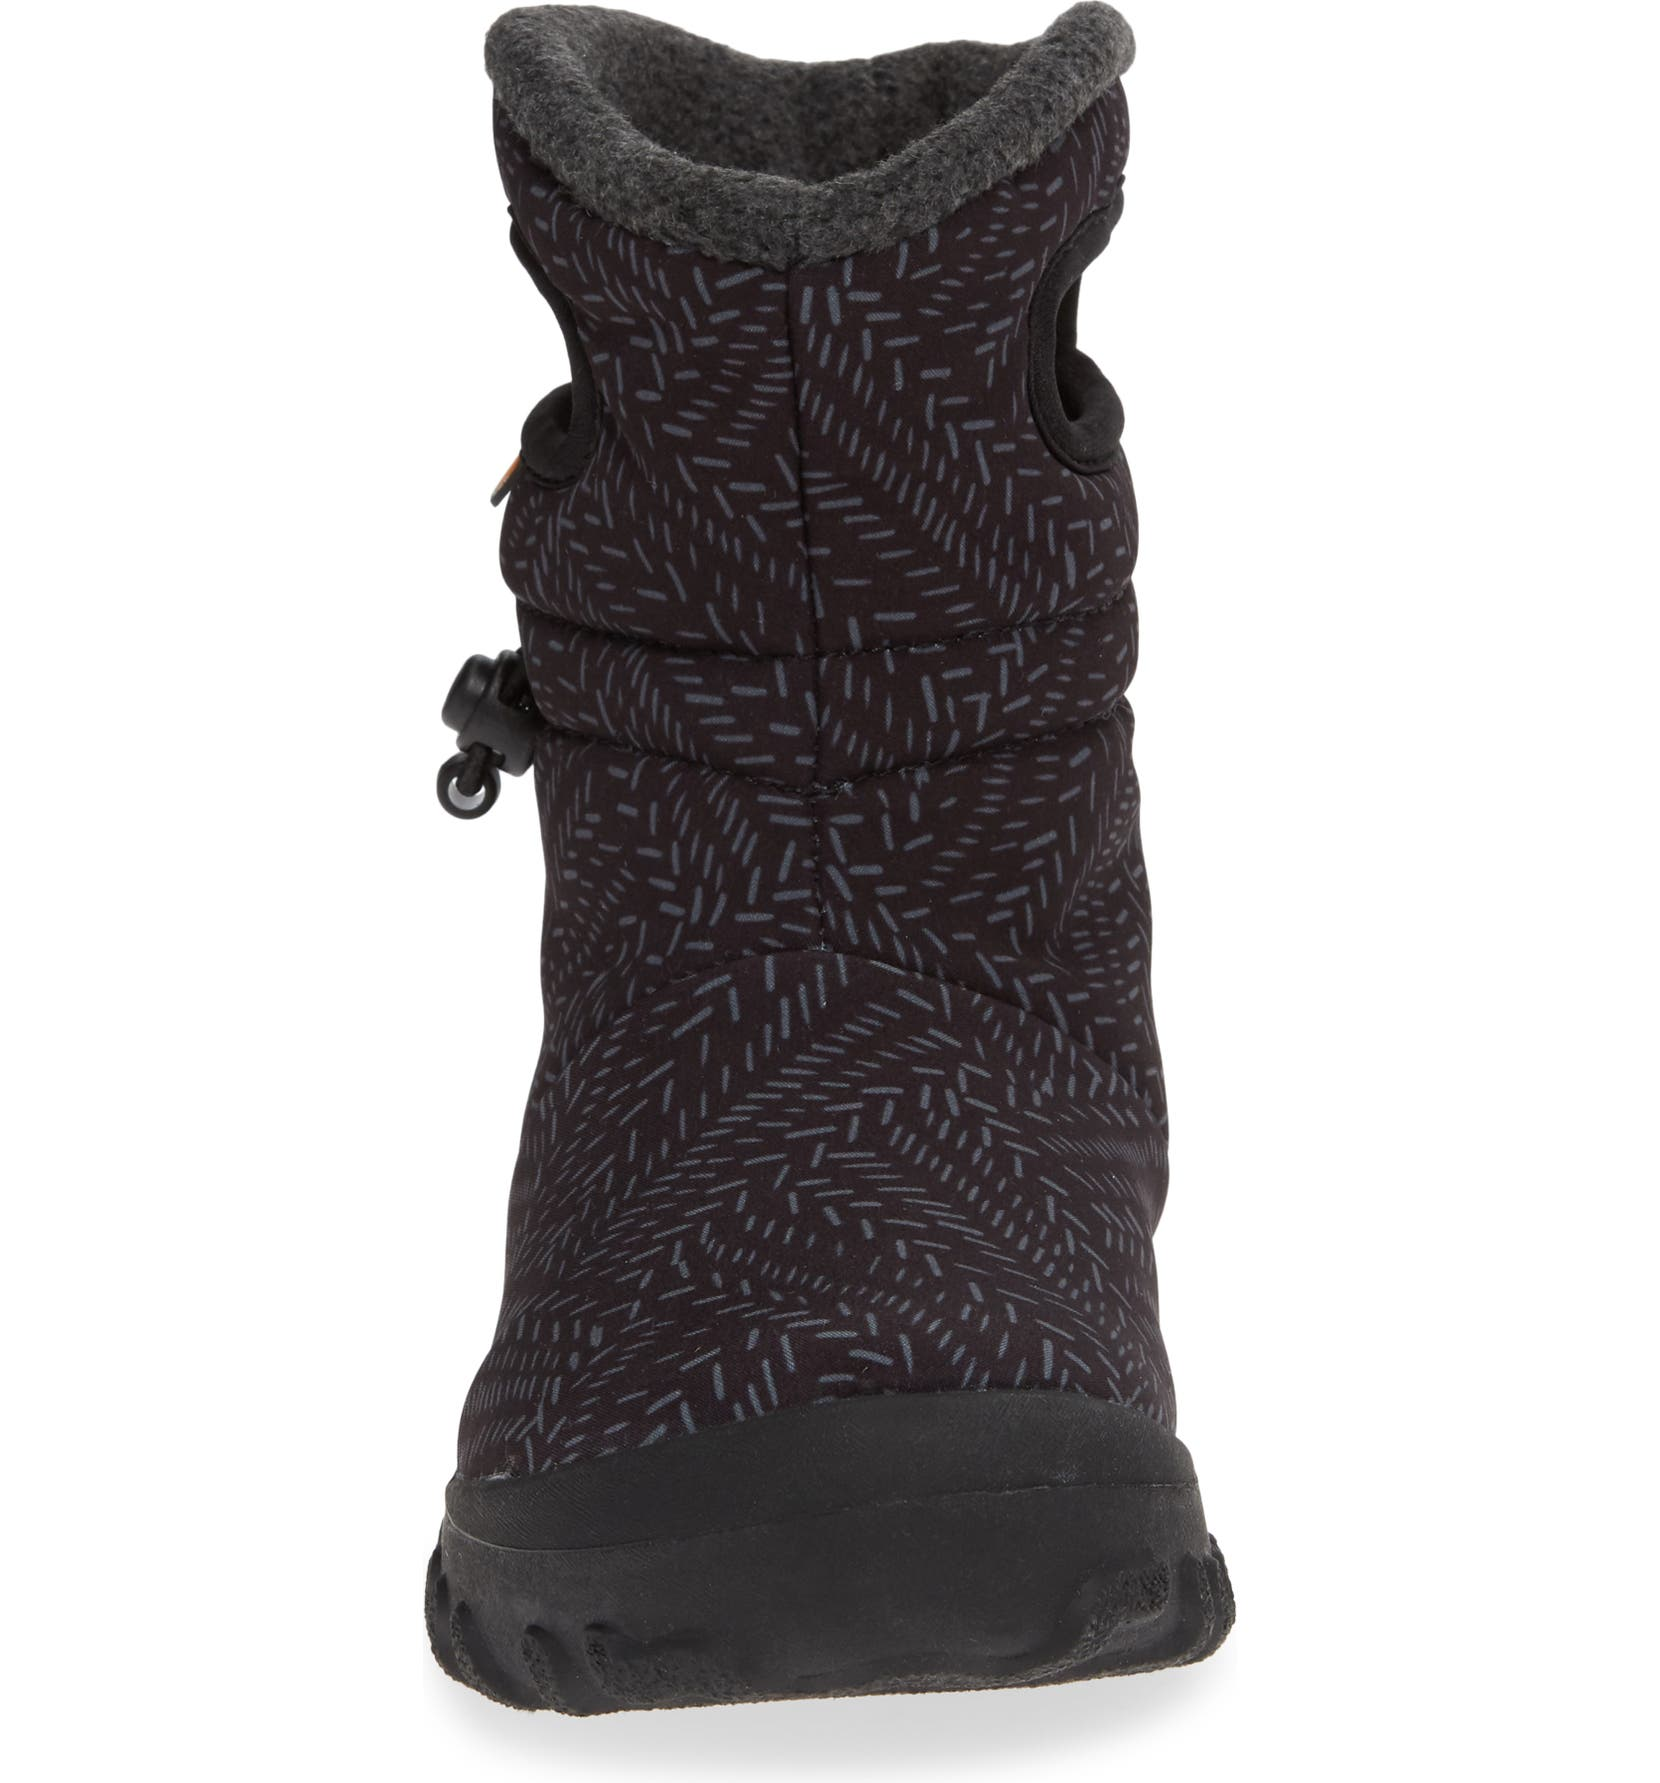 cc4902152e82 Bogs B-MOC Fleck Waterproof Insulated Faux Fur Boot (Baby, Walker, Toddler  & Little Kid) | Nordstrom